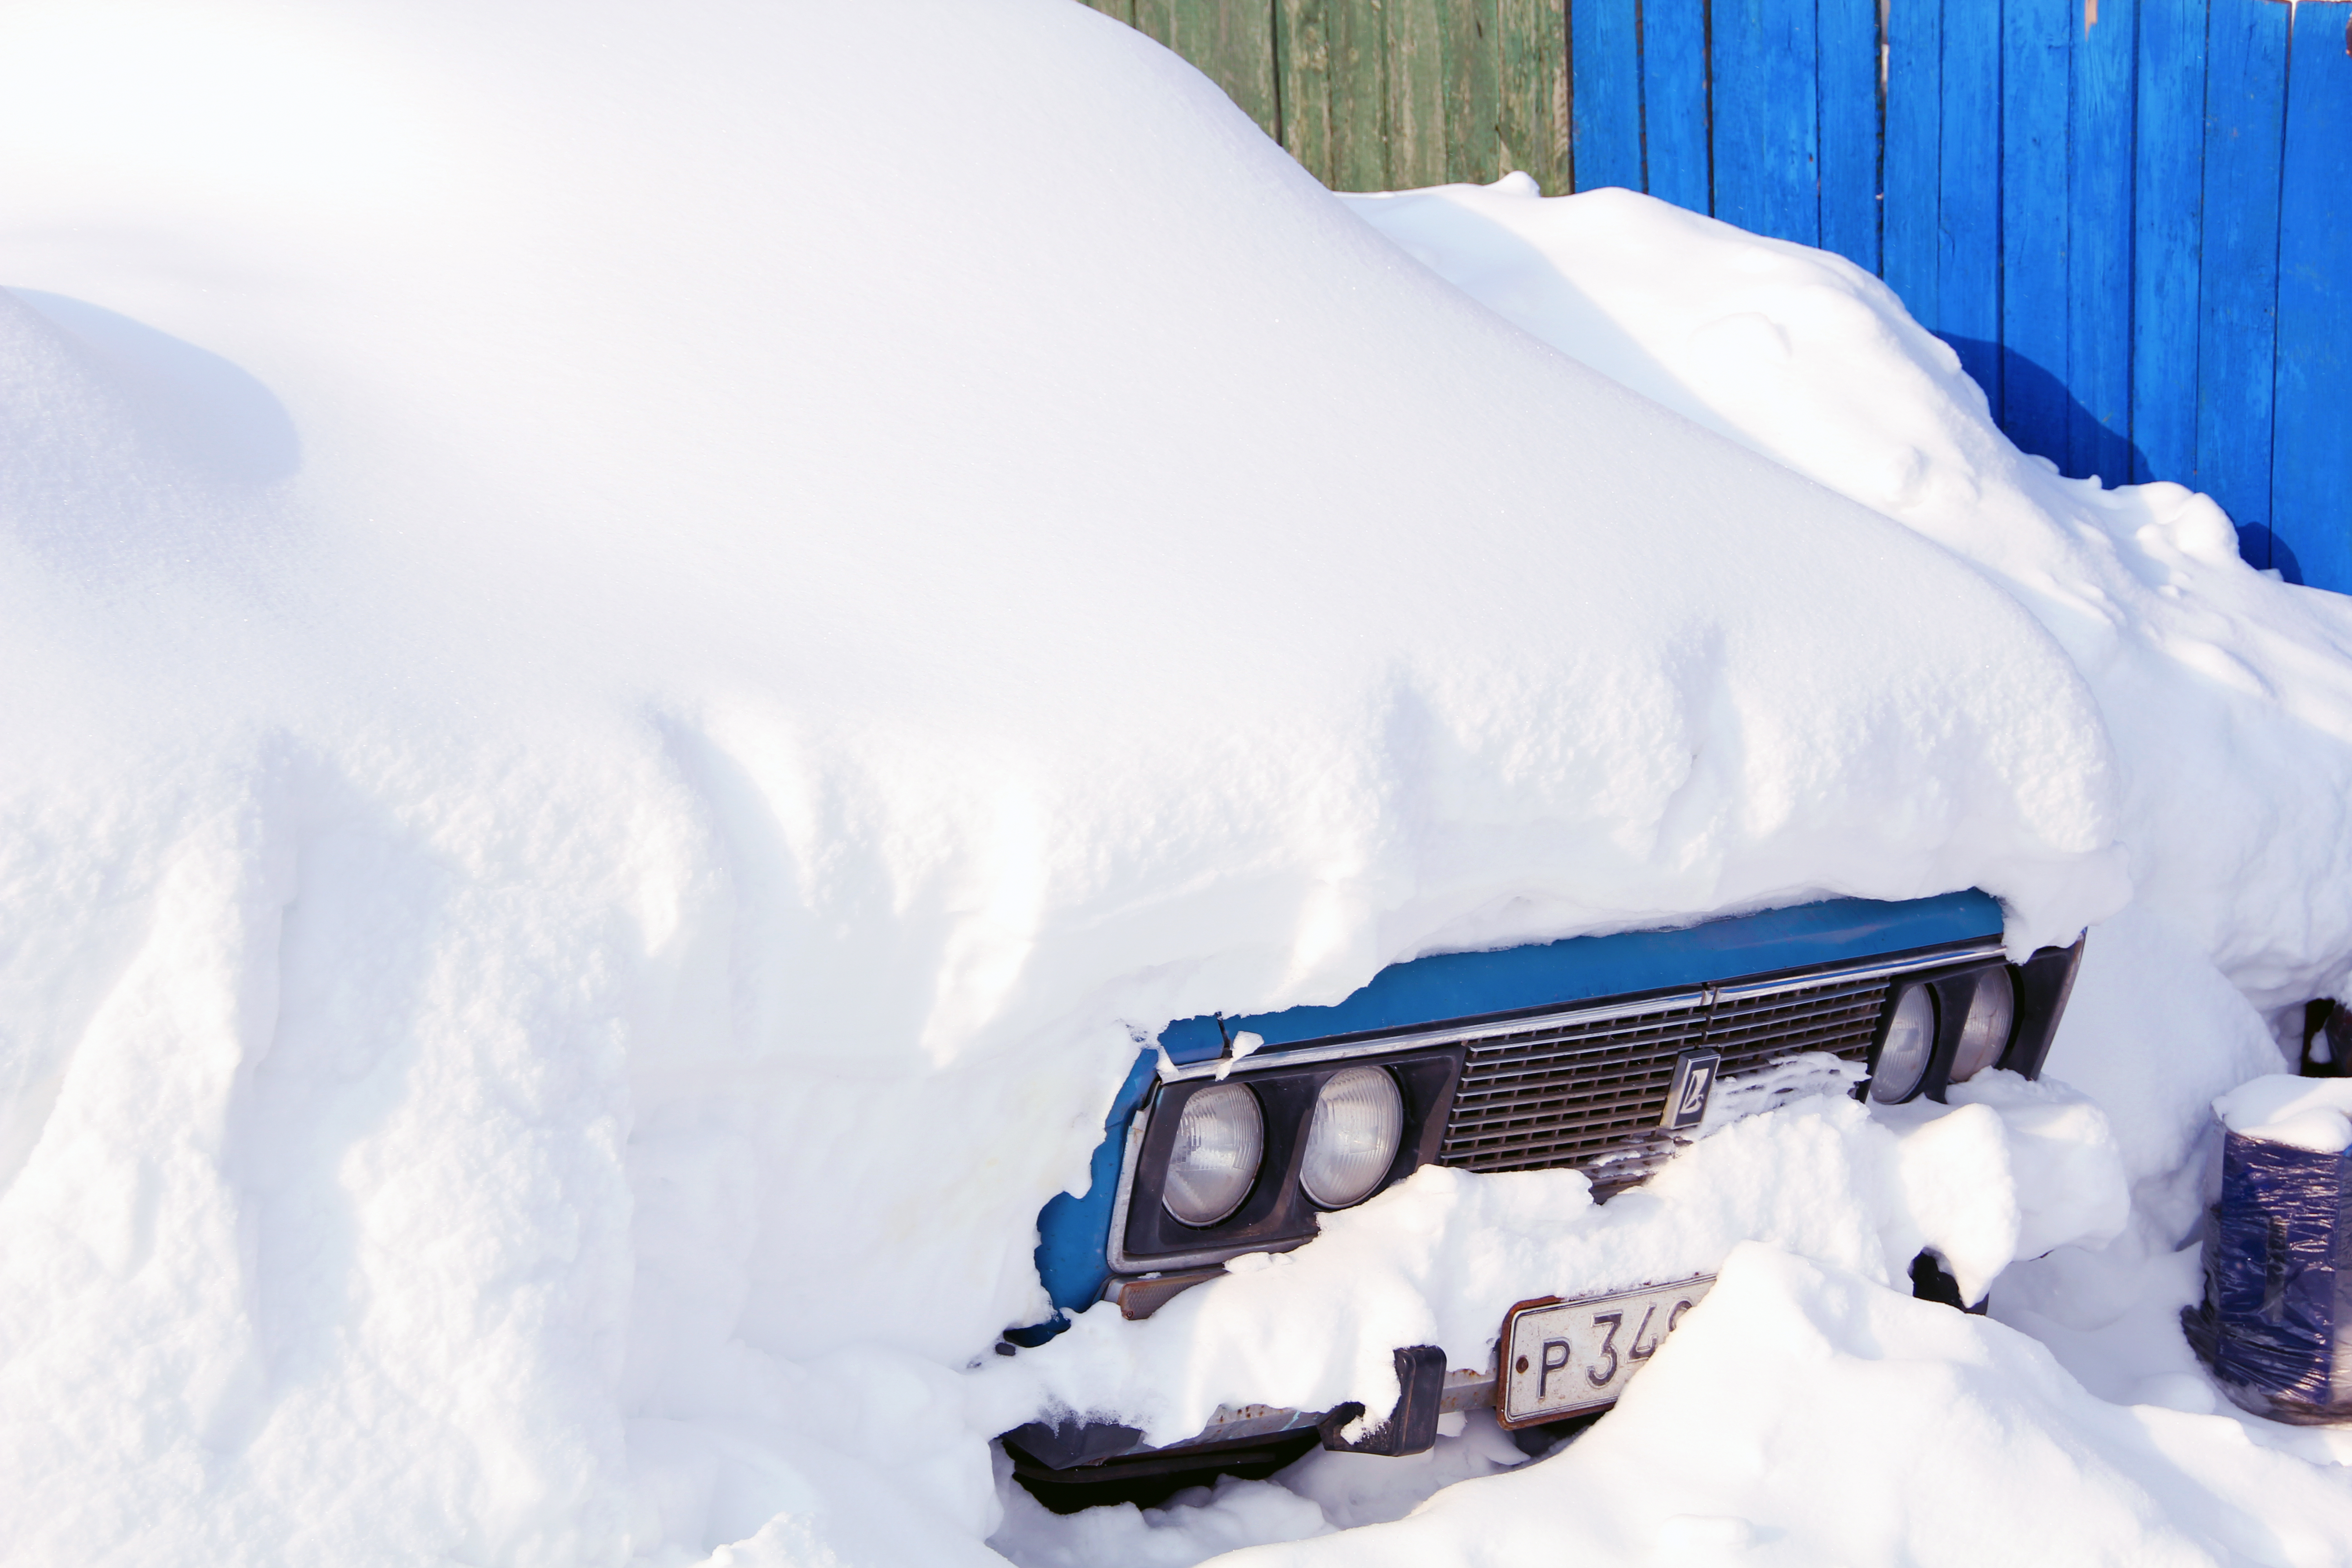 Snow-Covered Car, Car, Snowy, White, Weather, HQ Photo